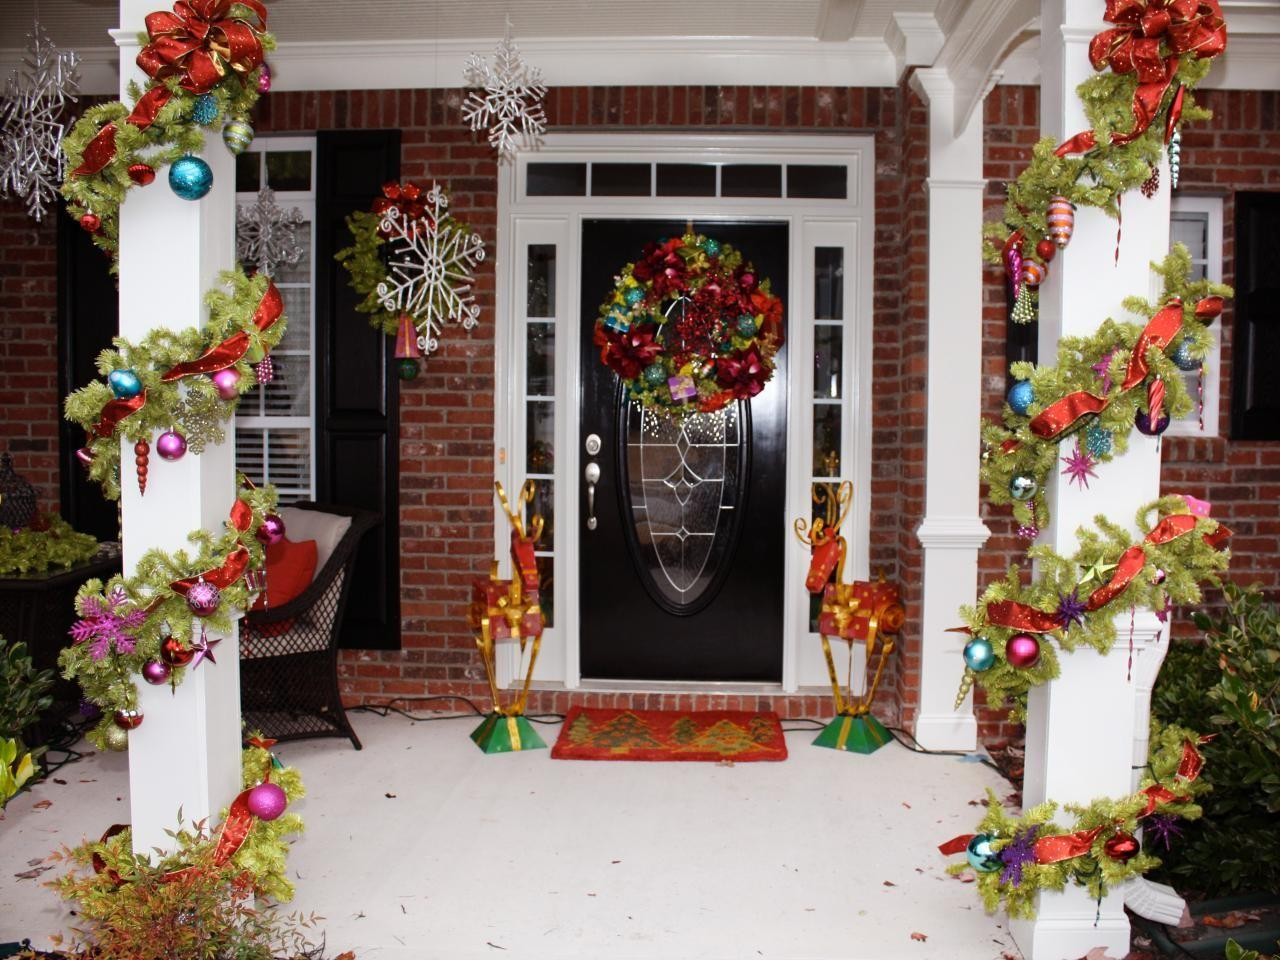 Awesome Enrtry Way Front Porch Christmas Decorations